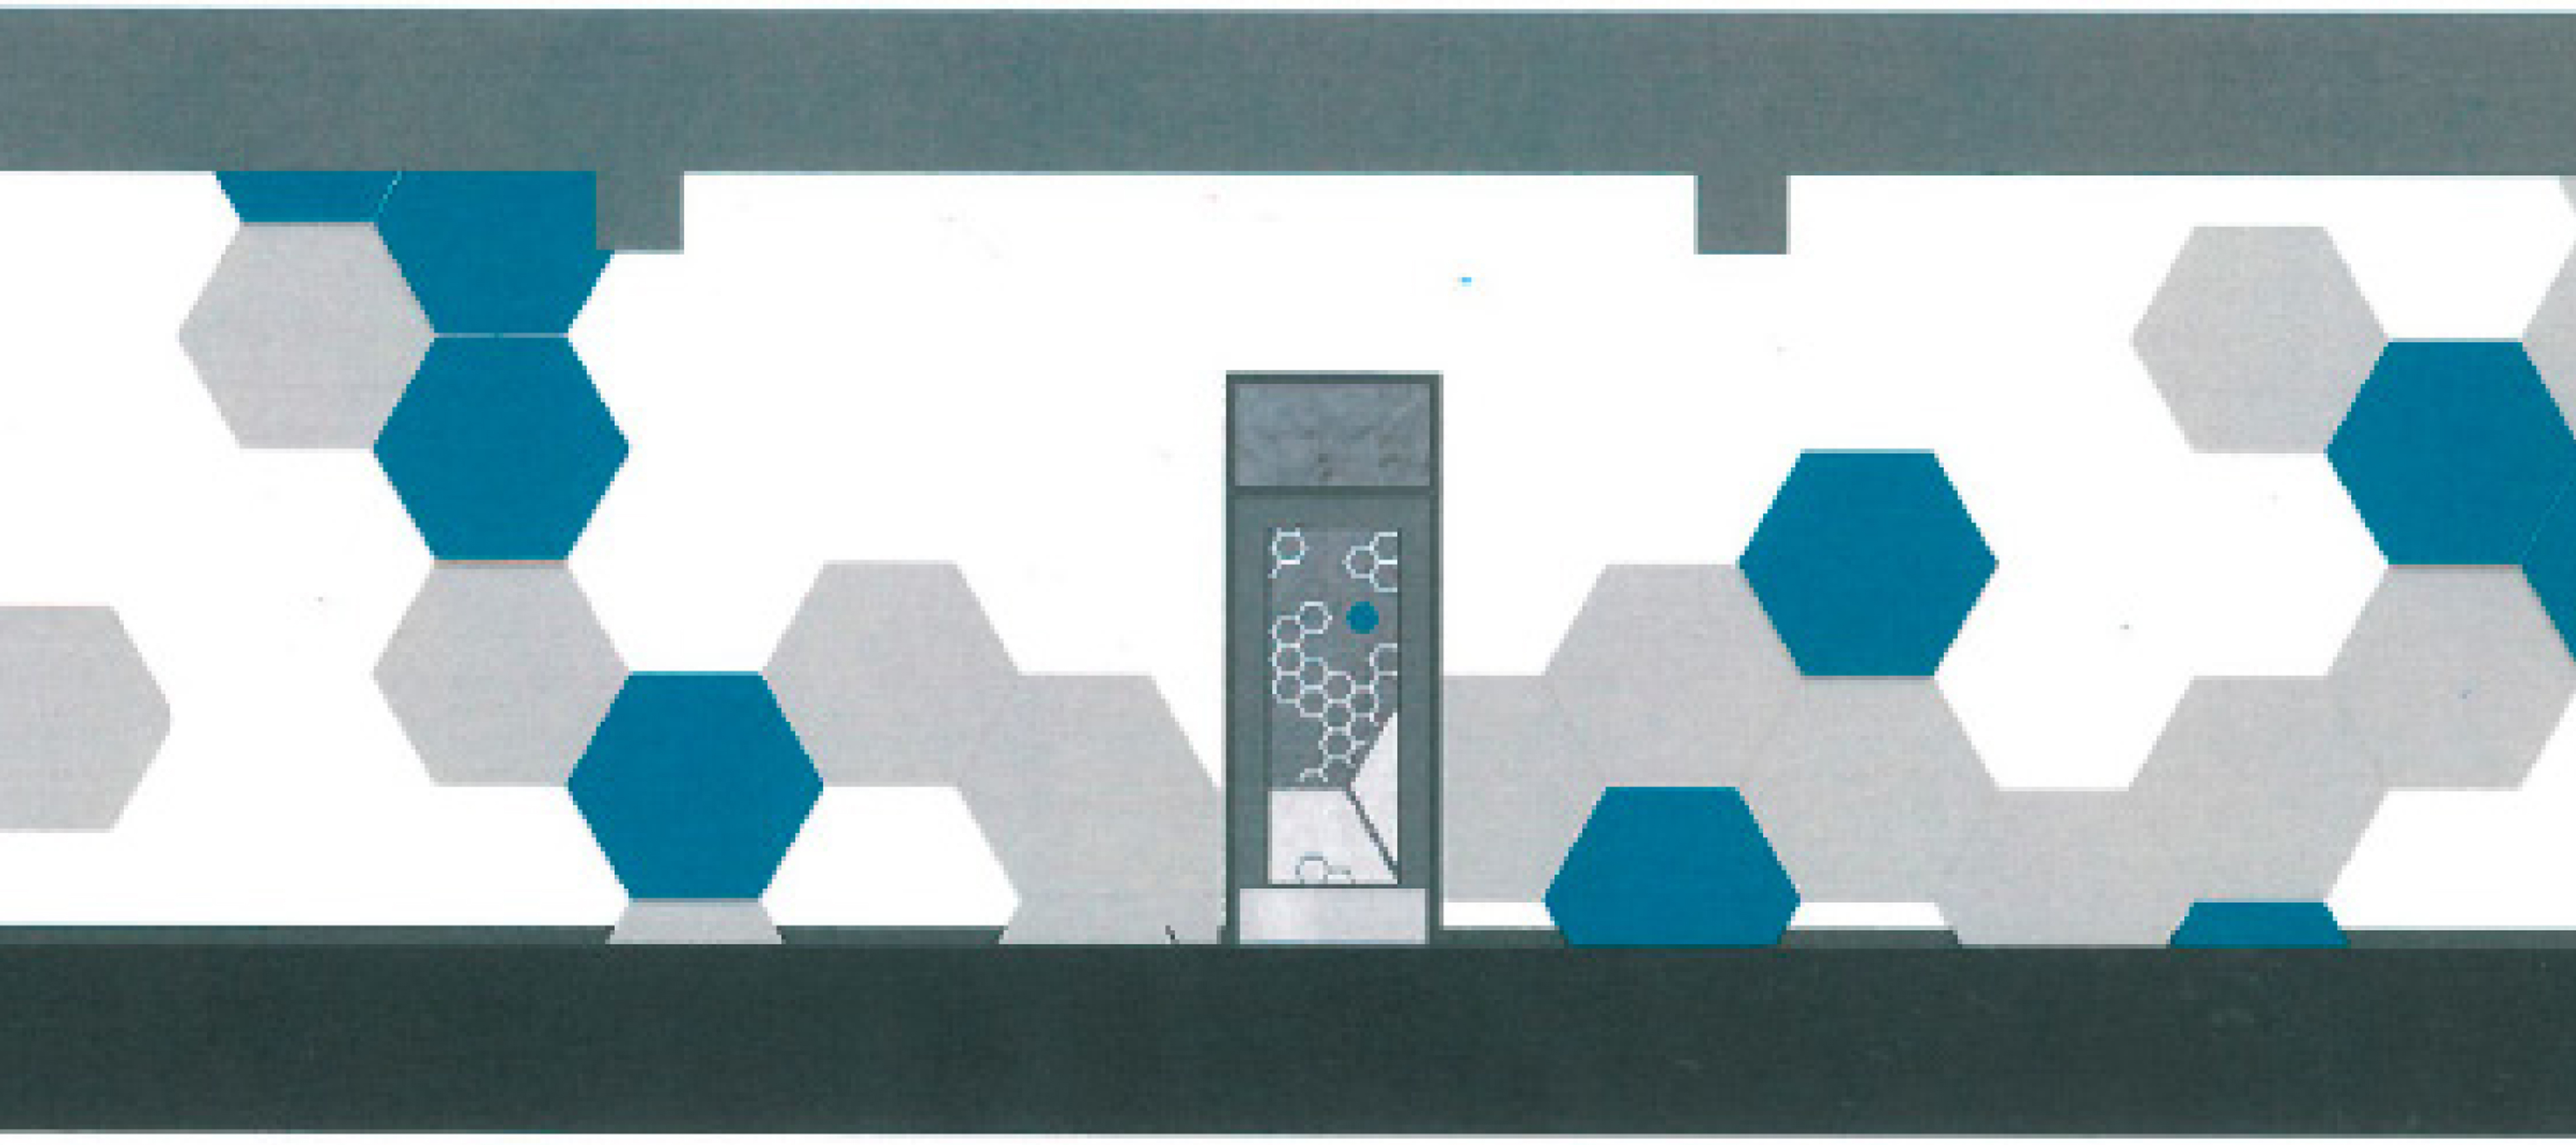 Mazama Gym East Wall design, submitted by Bill Douglass